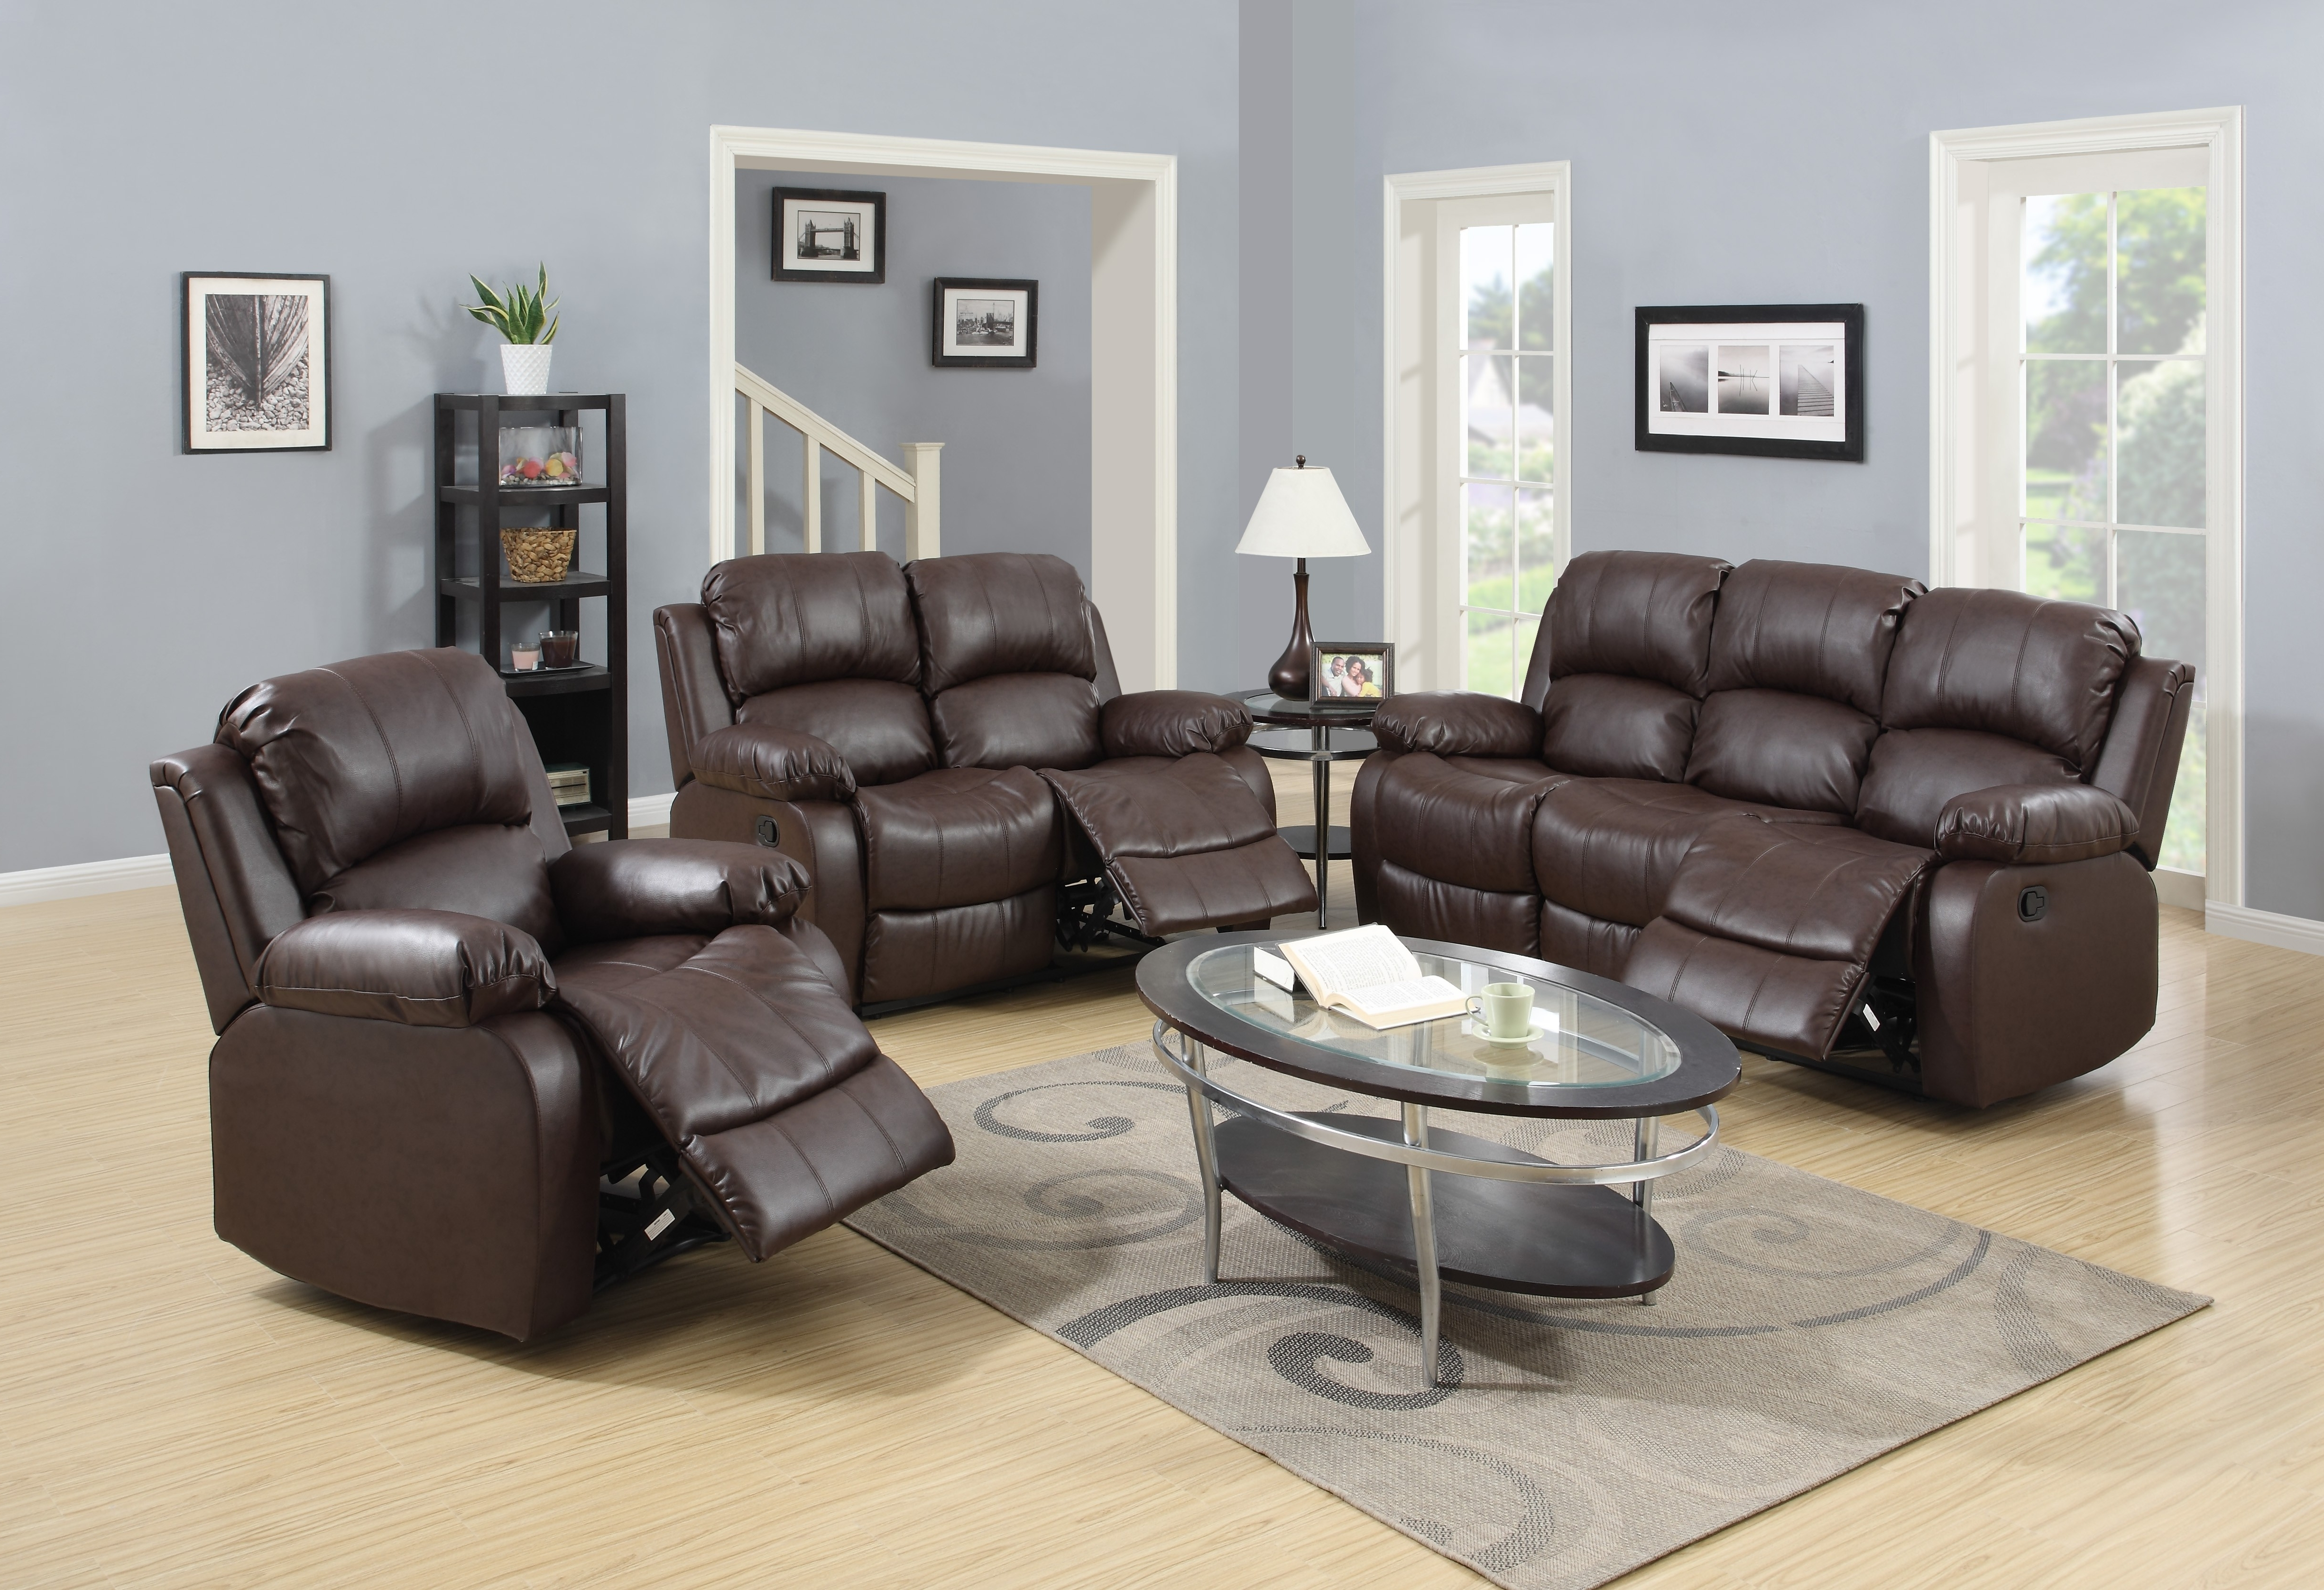 Well Known Sears Sofas Regarding Excellent Decoration Sears Living Room Sets Sweet Design Amazing (View 13 of 15)